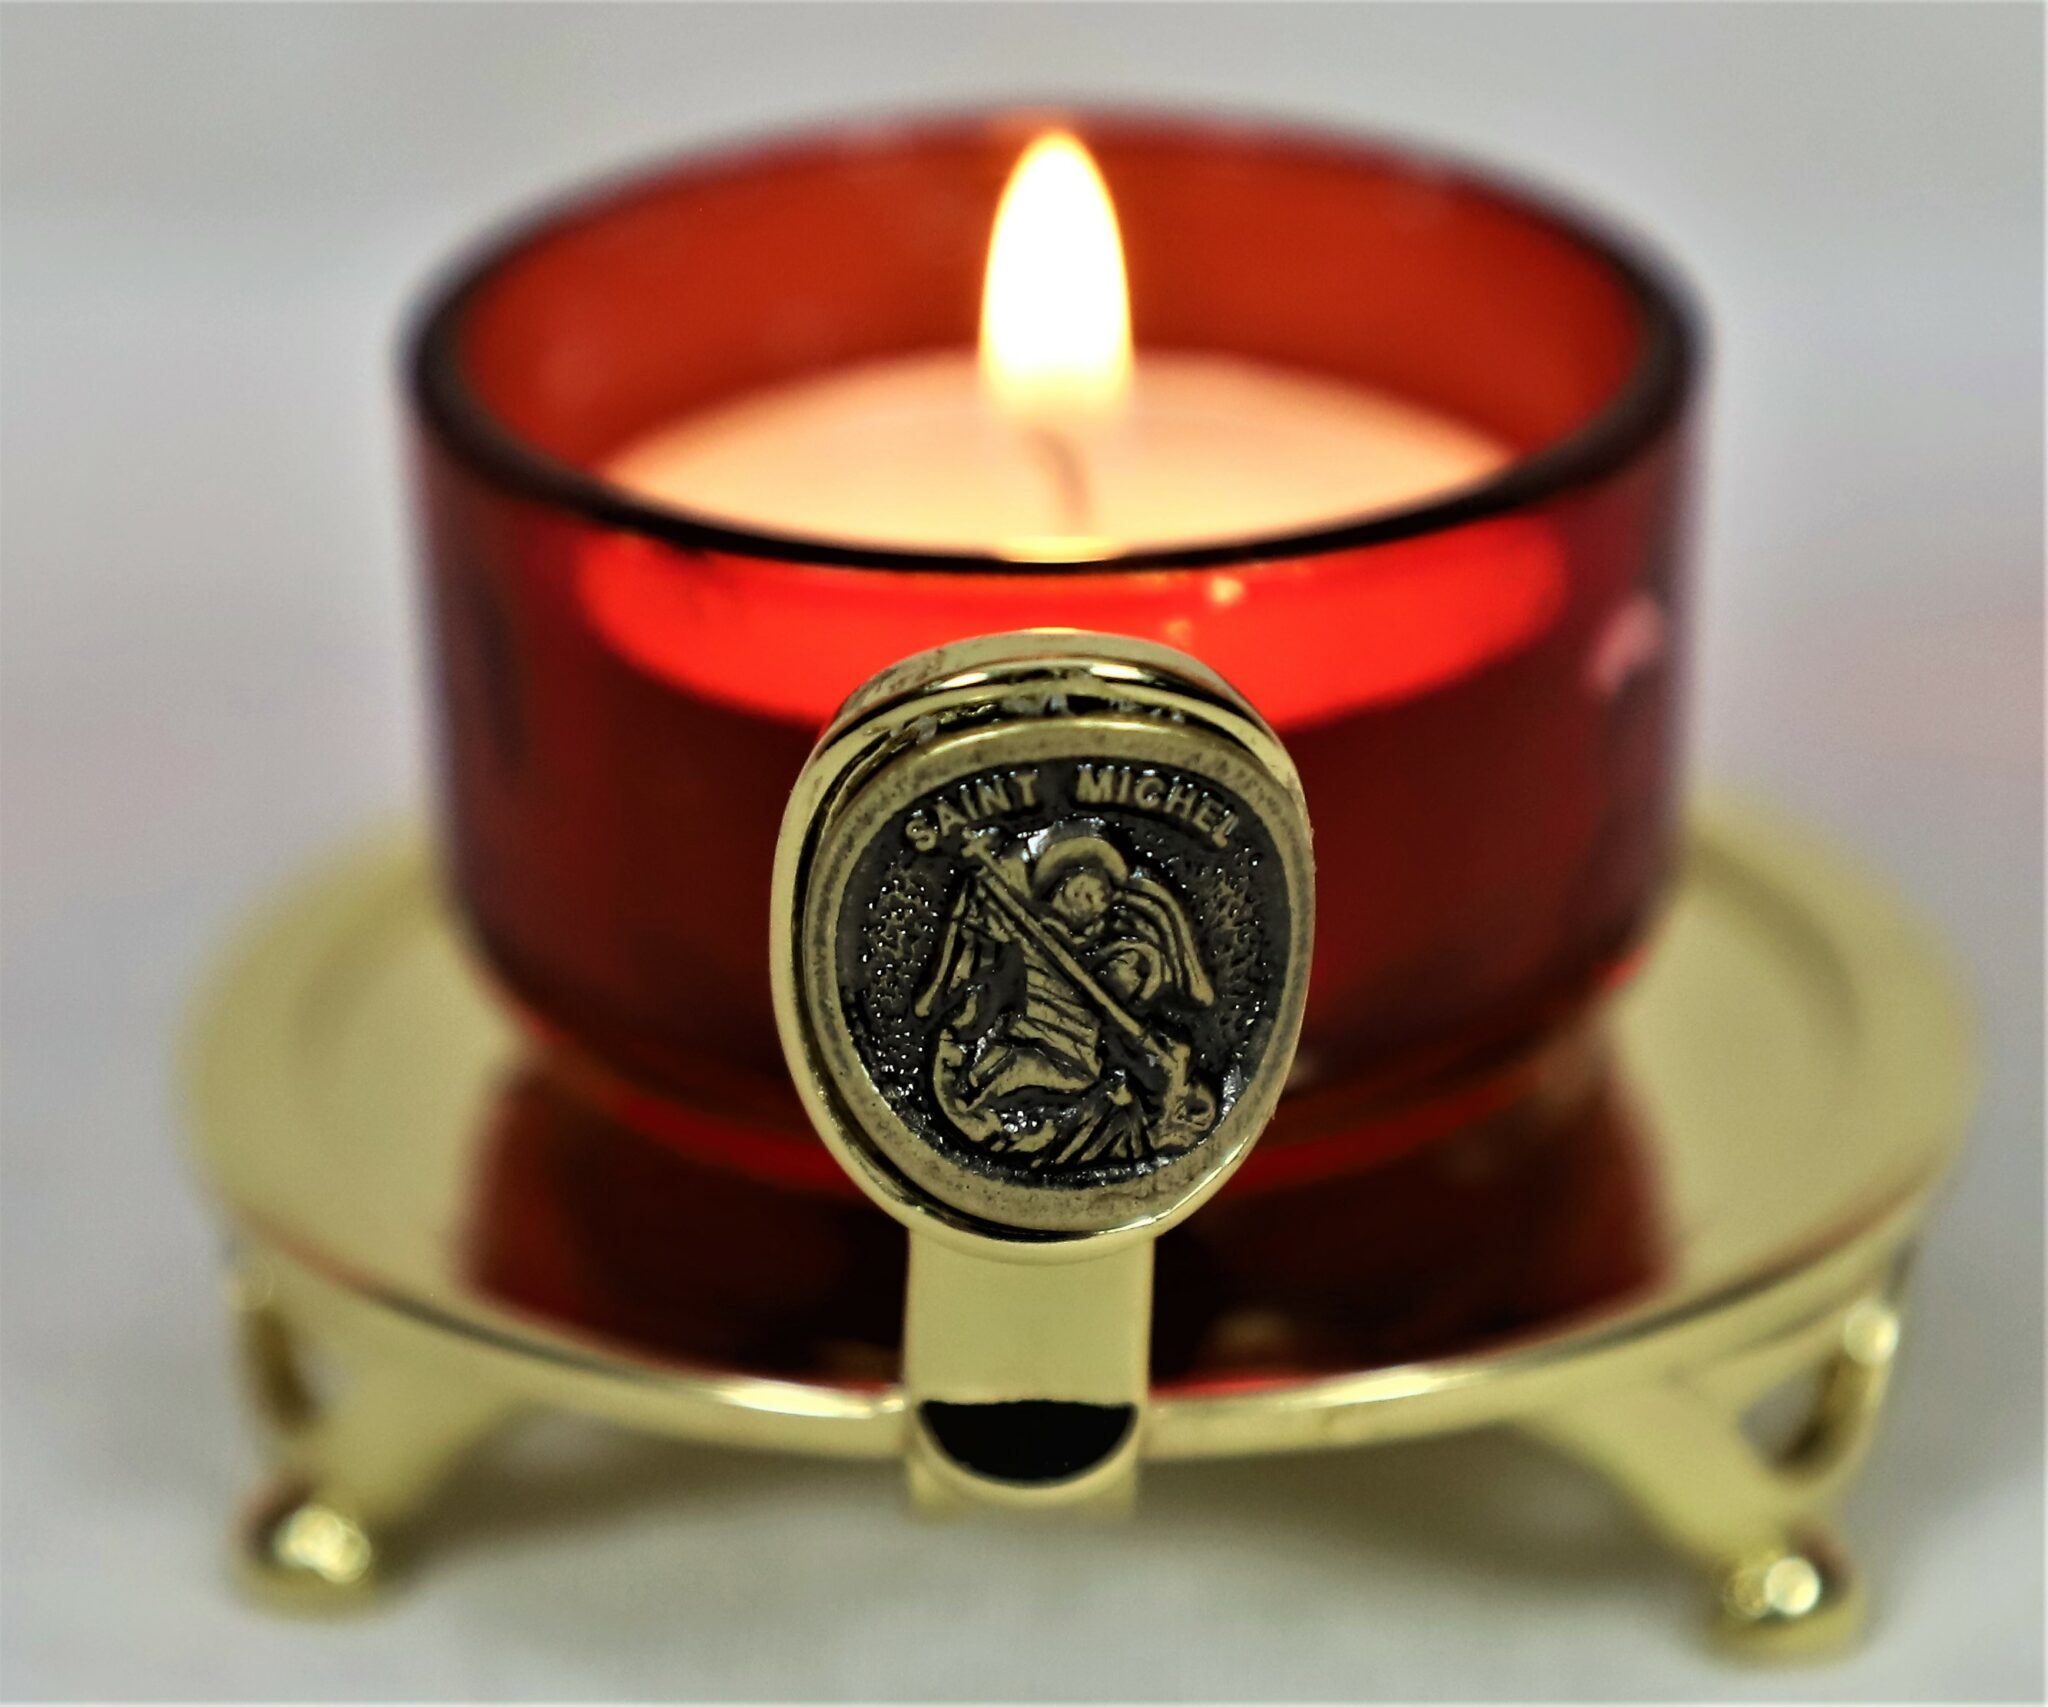 esoteric and initiatic light holder small red votive